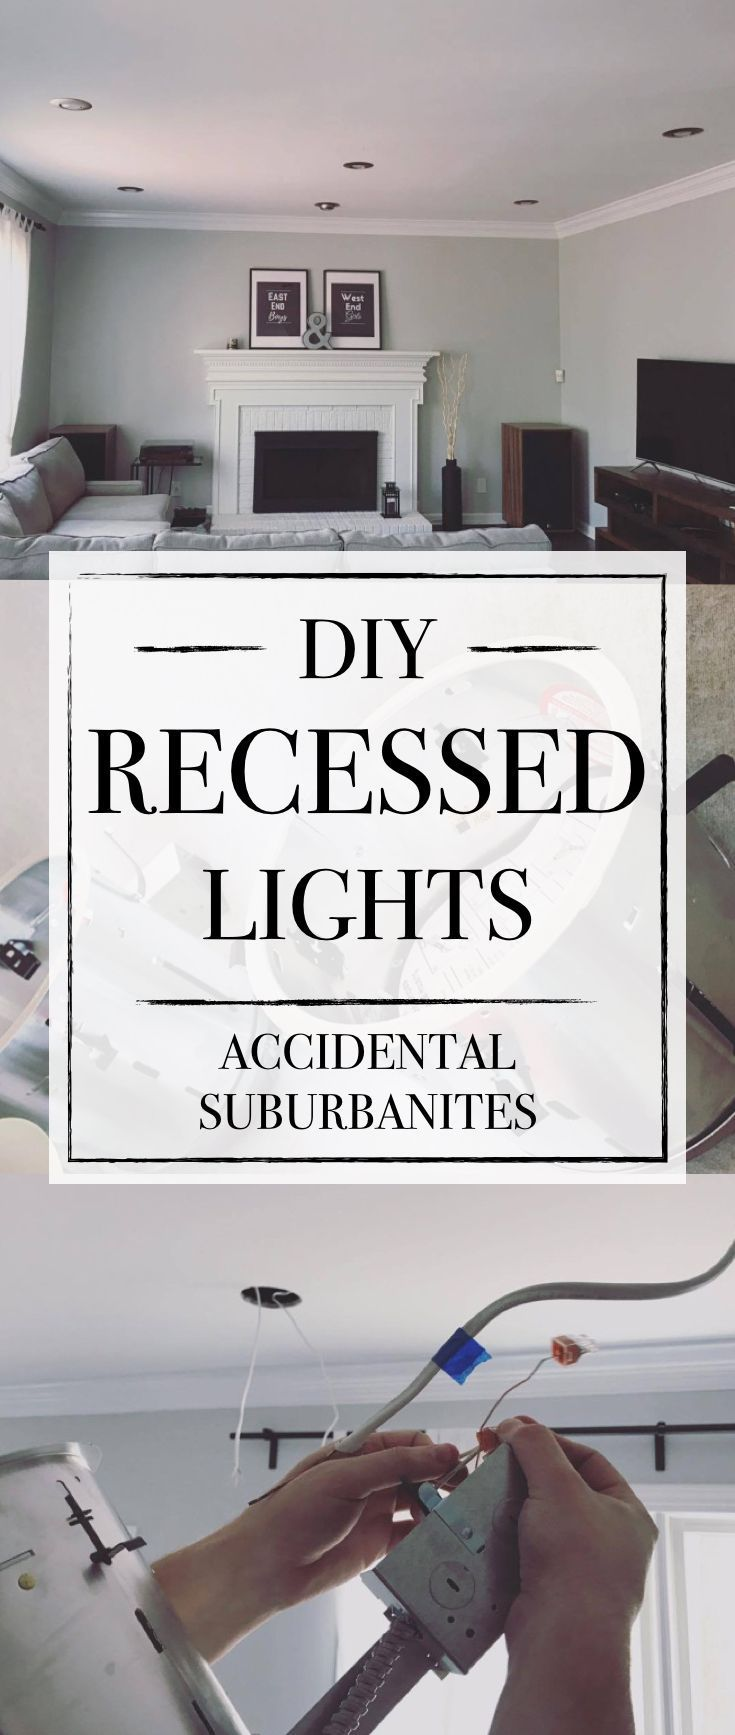 Diy recessed lighting how to install recessed lights with no attic diy recessed lighting how to install recessed lights with no attic access convert existing aloadofball Image collections